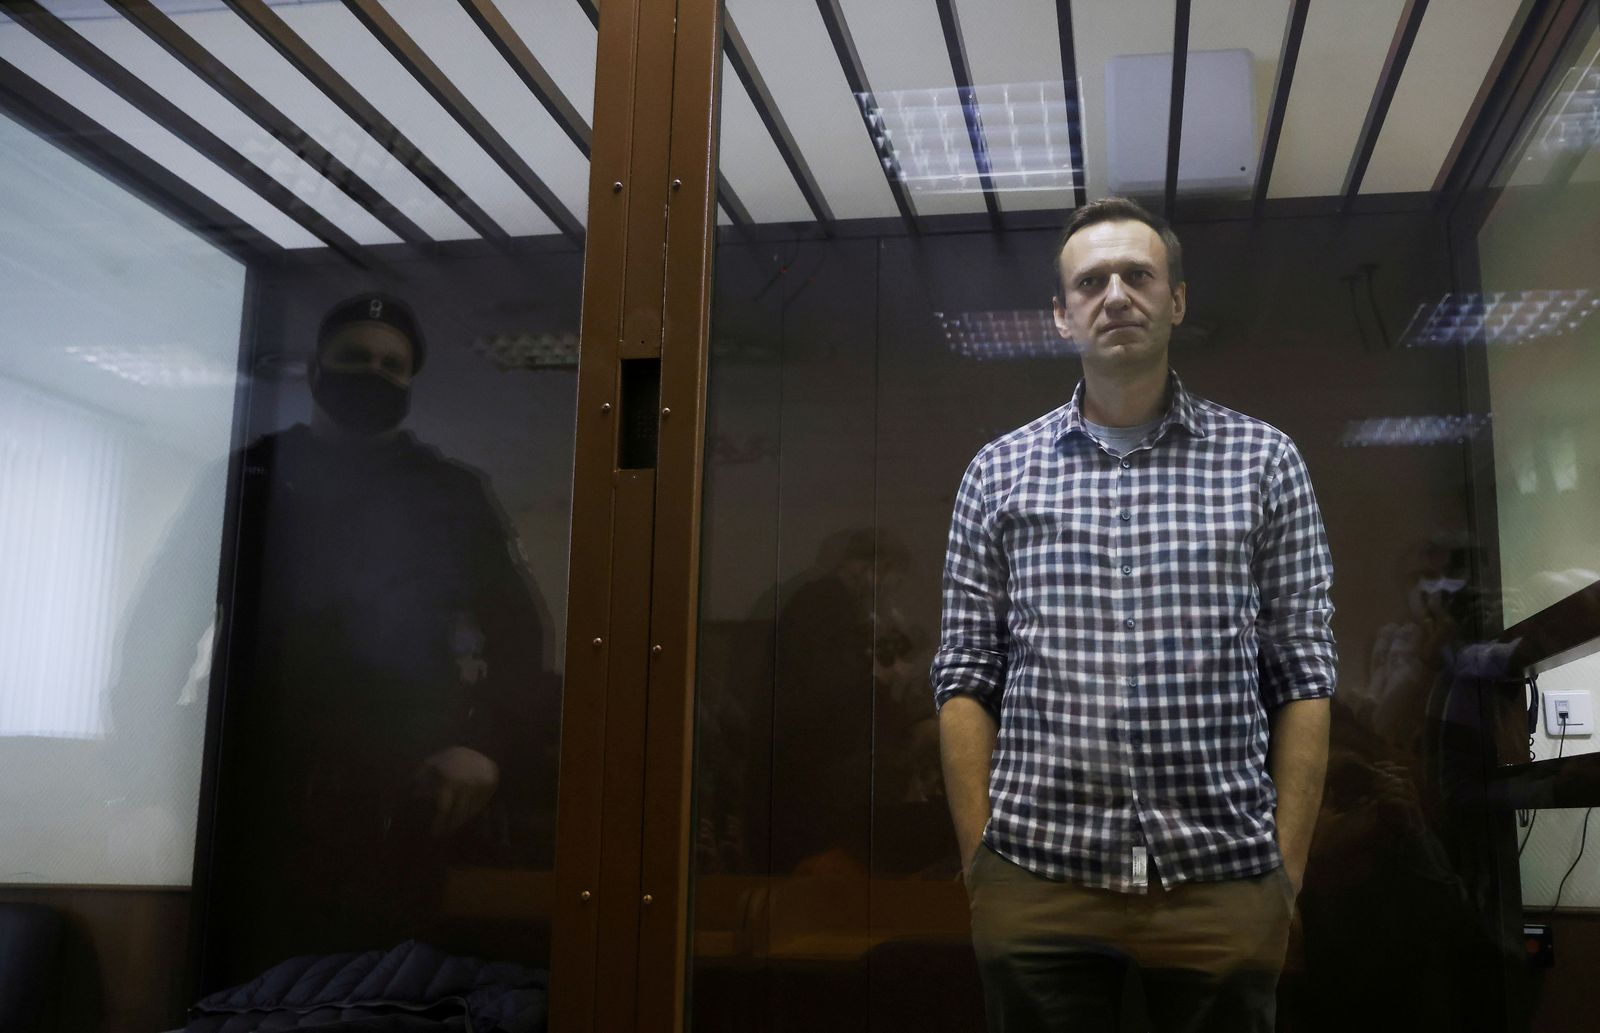 FILE PHOTO: FILE PHOTO: Russian opposition leader Alexei Navalny hearing to consider an appeal against an earlier court decision to change his suspended sentence to a real prison term